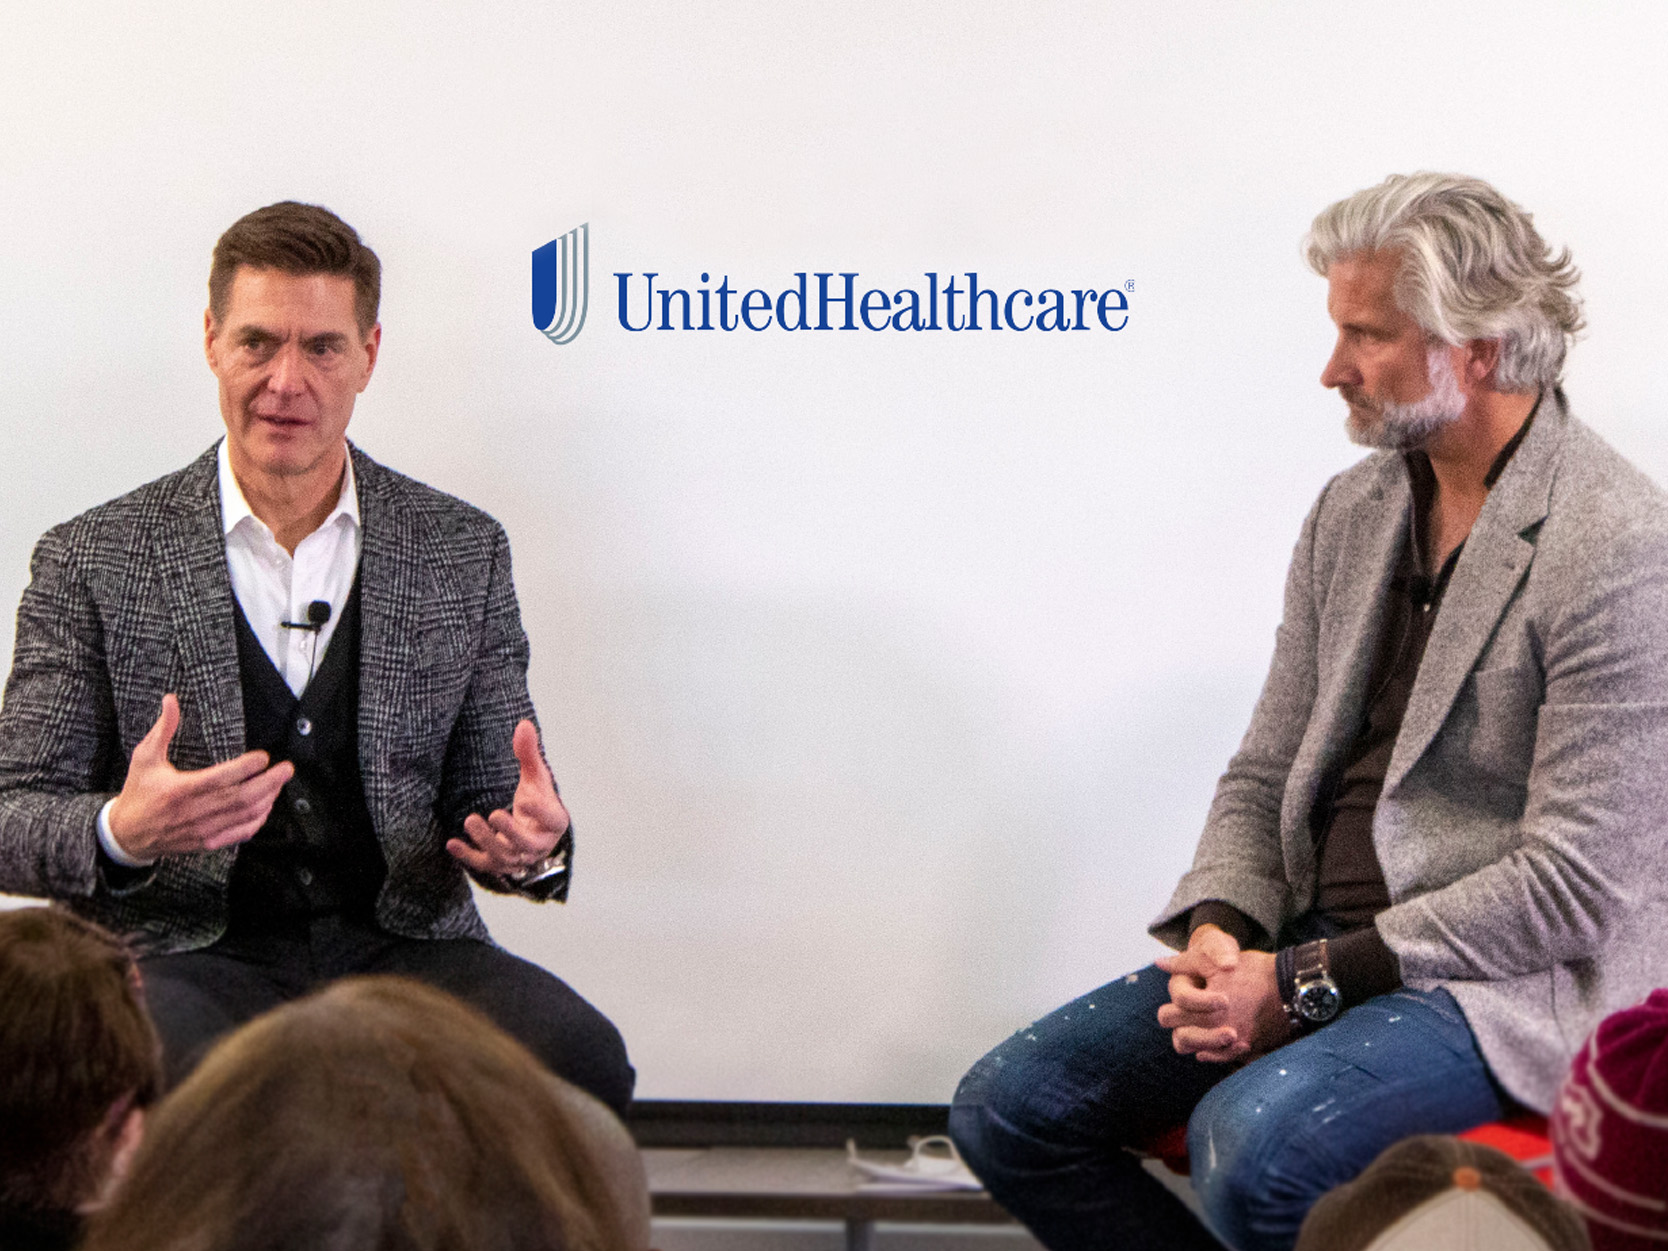 United healthcare CEO Nelson